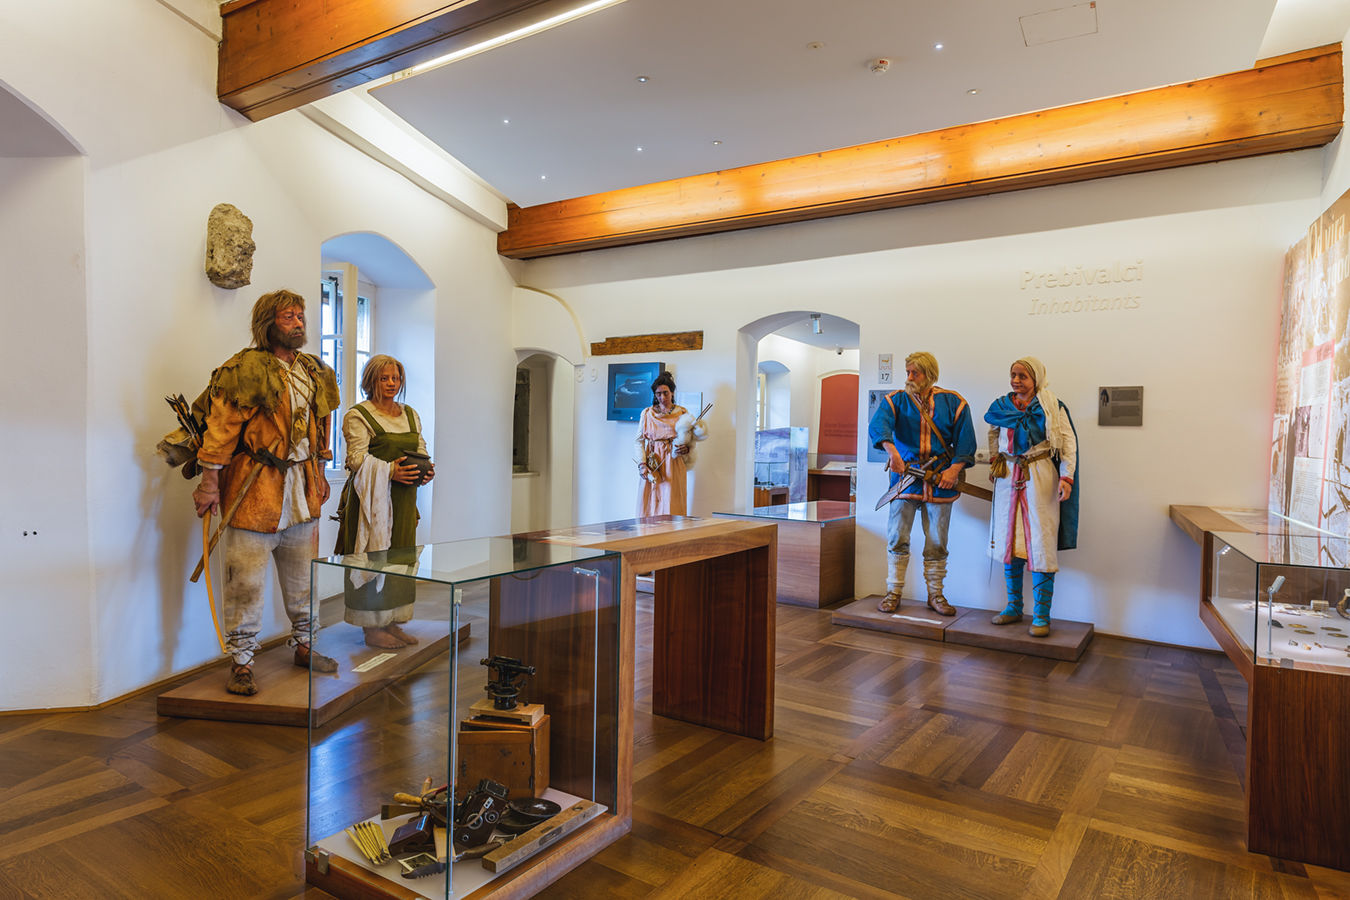 17. THE MUSEUM - ROOM 7: THE INHABITANTS AND EXPLORERS OF BLED